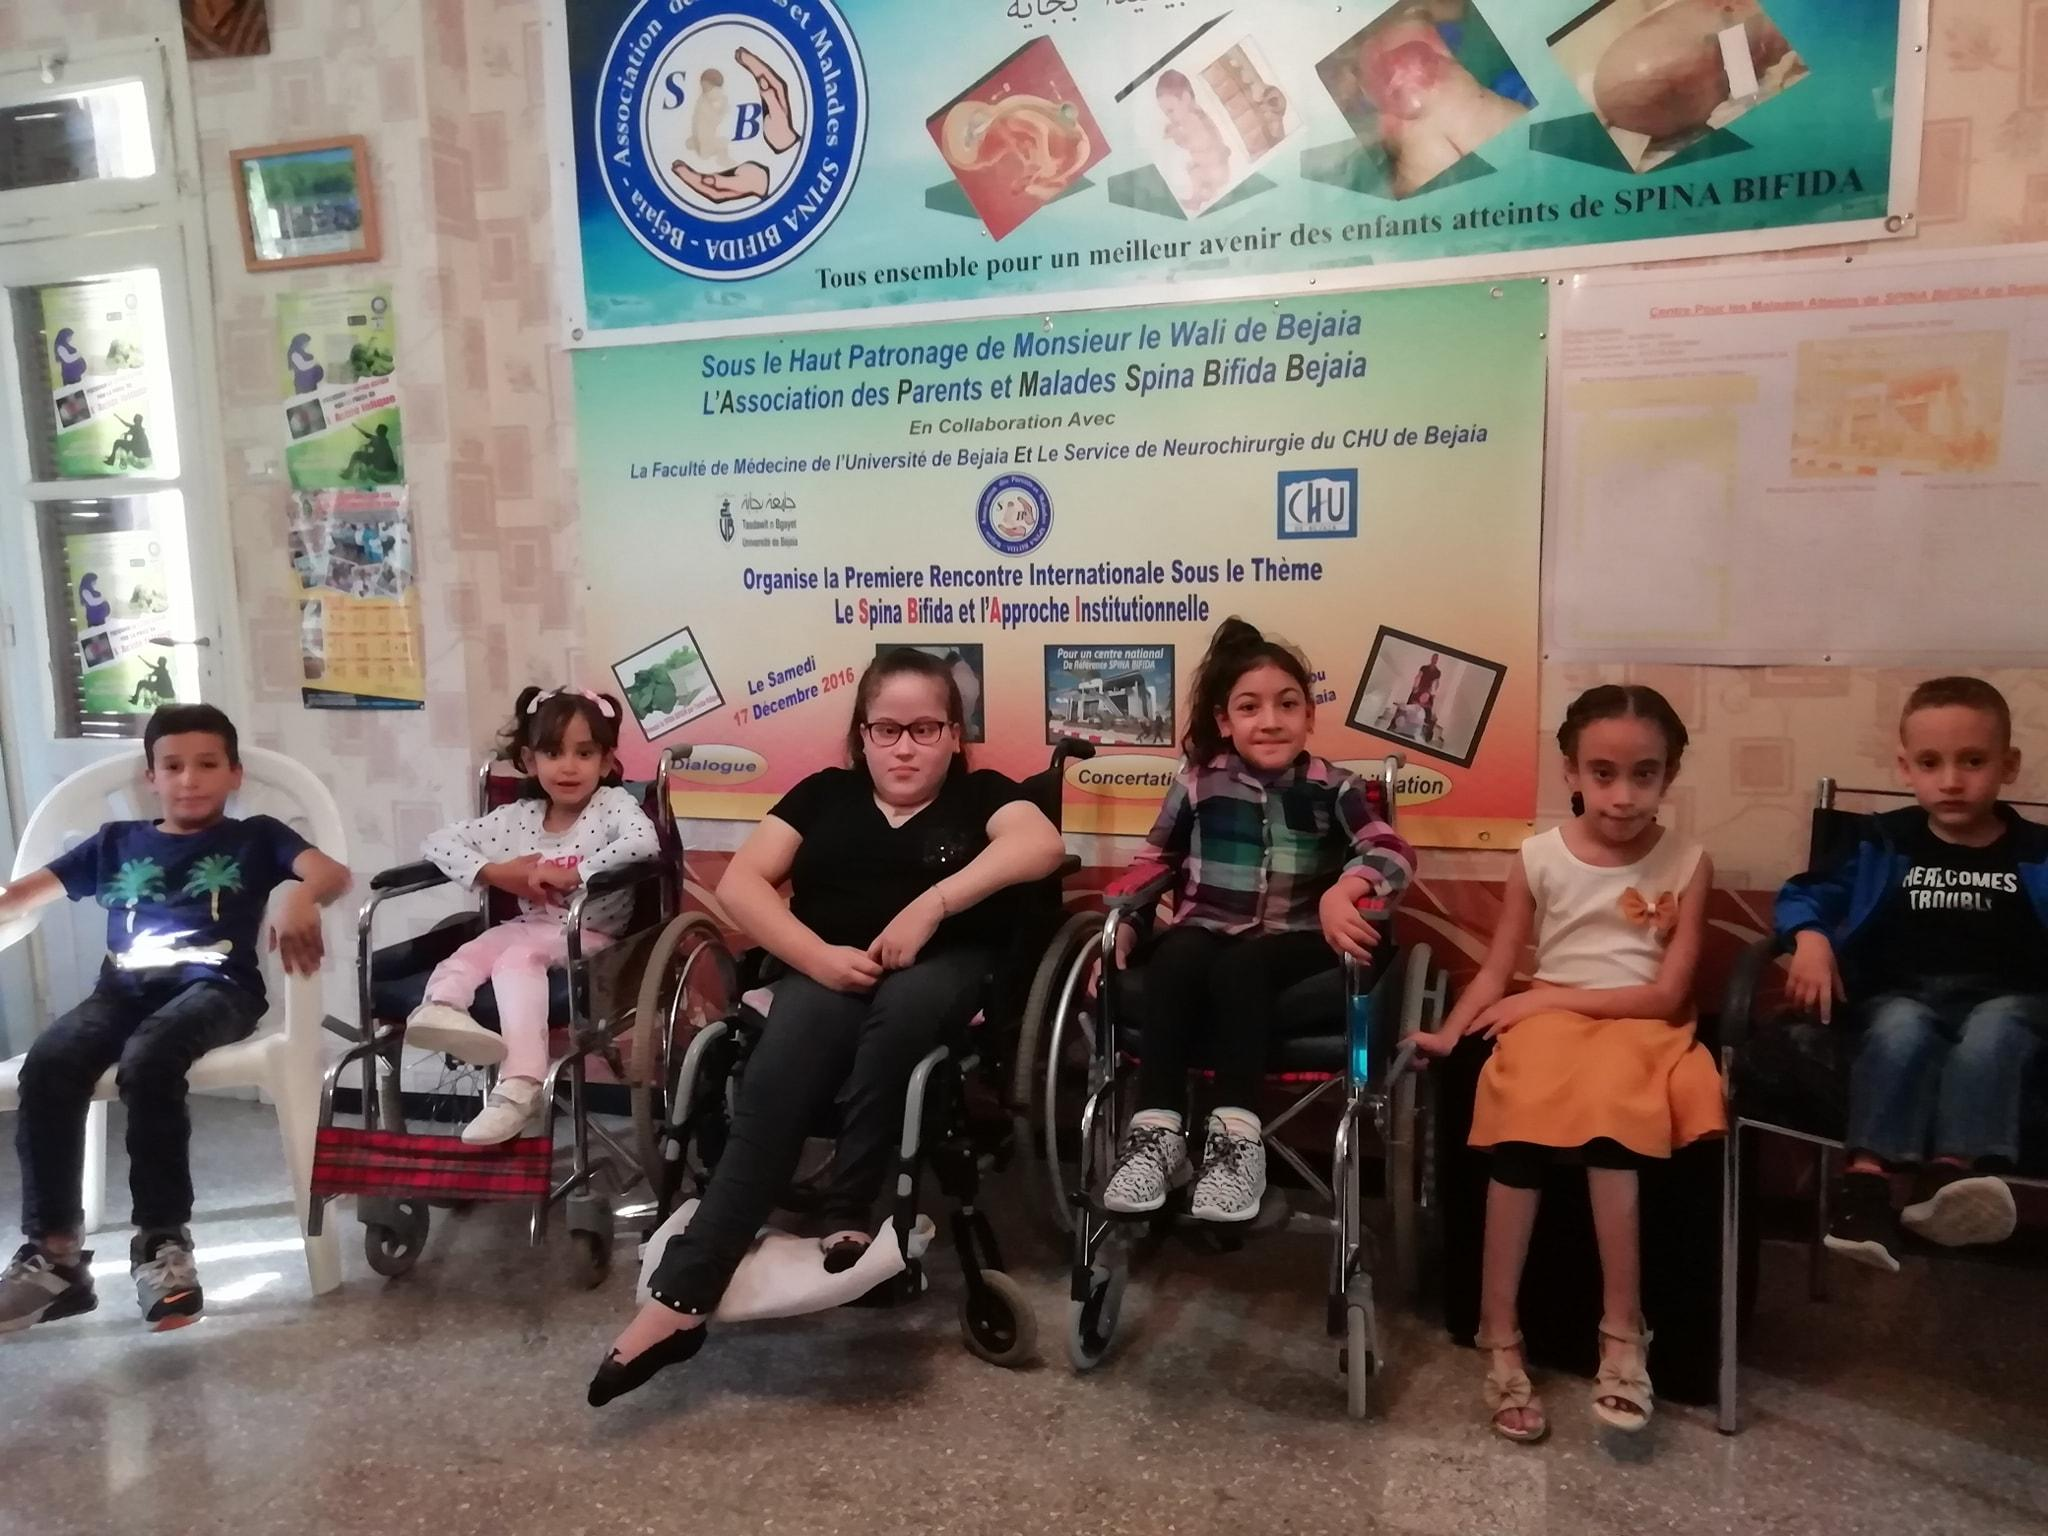 Association des Parents et Malades Spina Bifida Bejaia